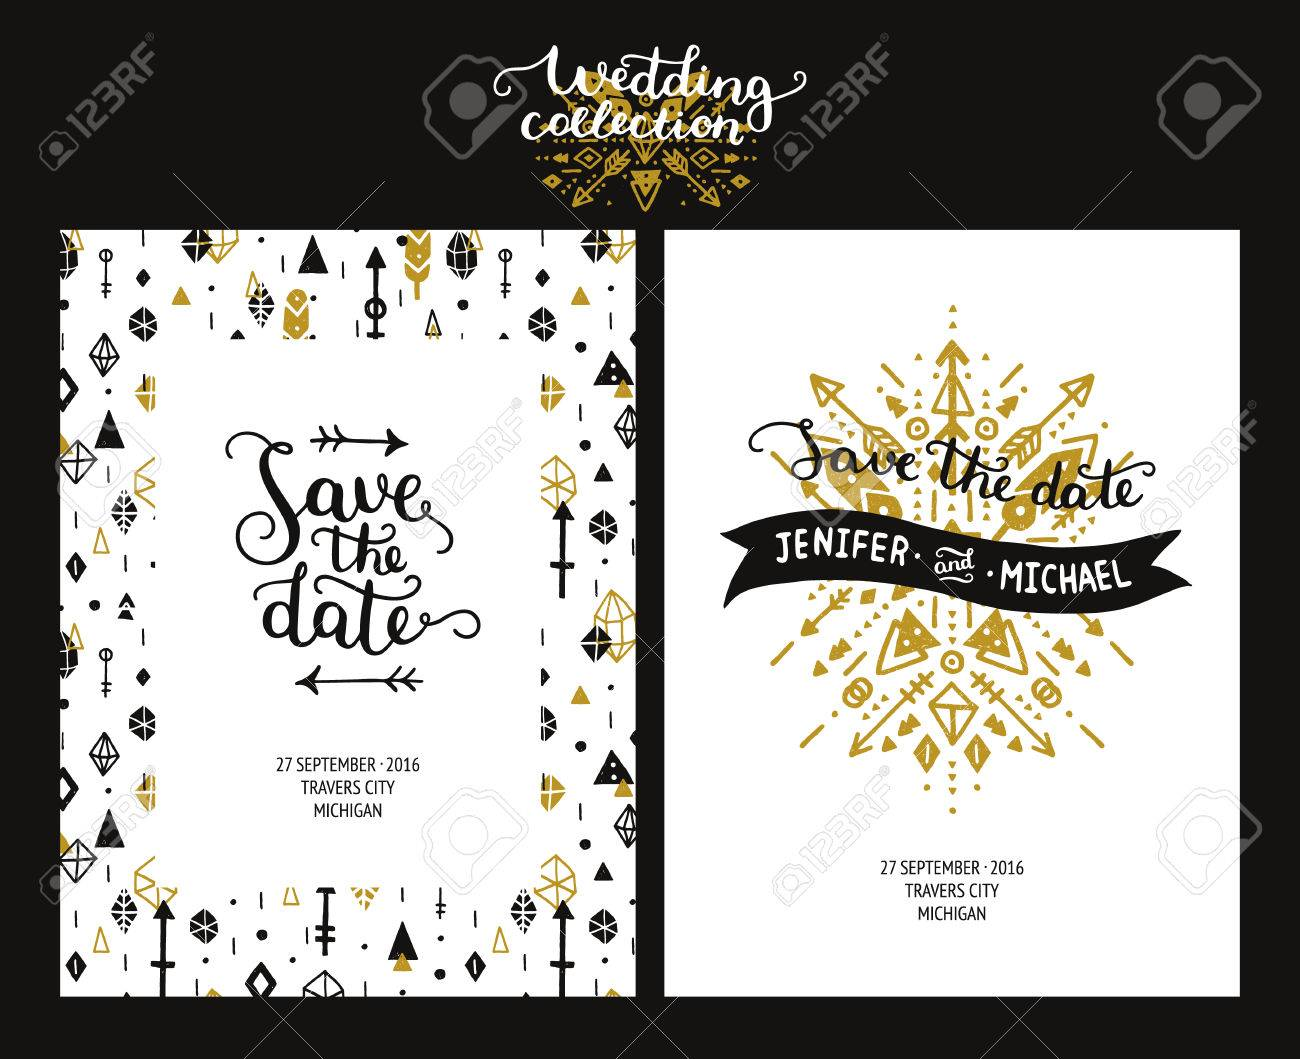 Save The Date Cards, Boho Wedding Invitation With Hand Drawn ...